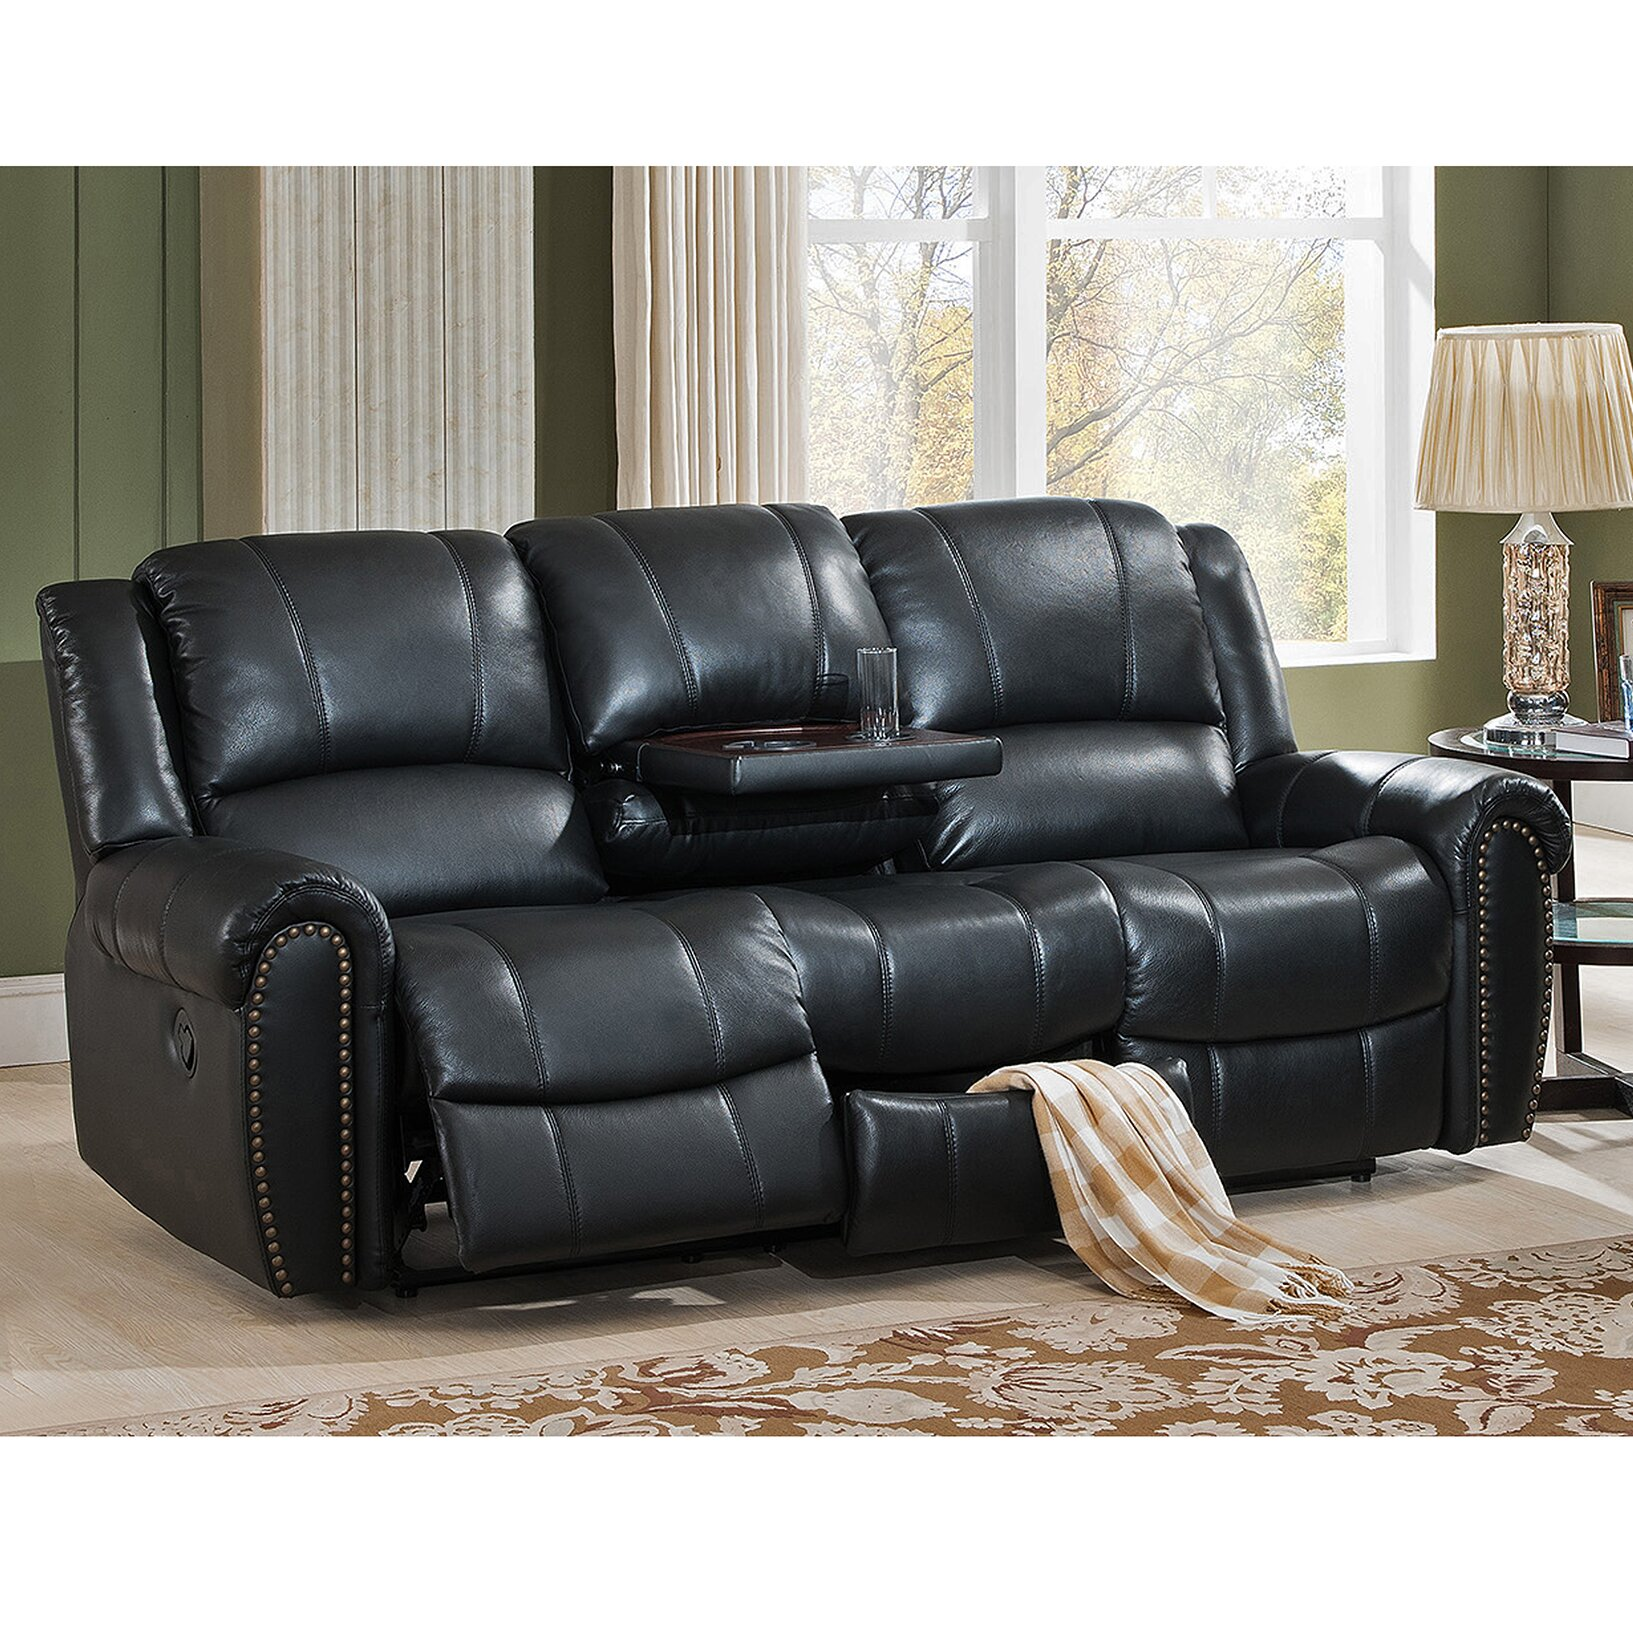 amax houston 3 piece leather recliner living room set wayfair